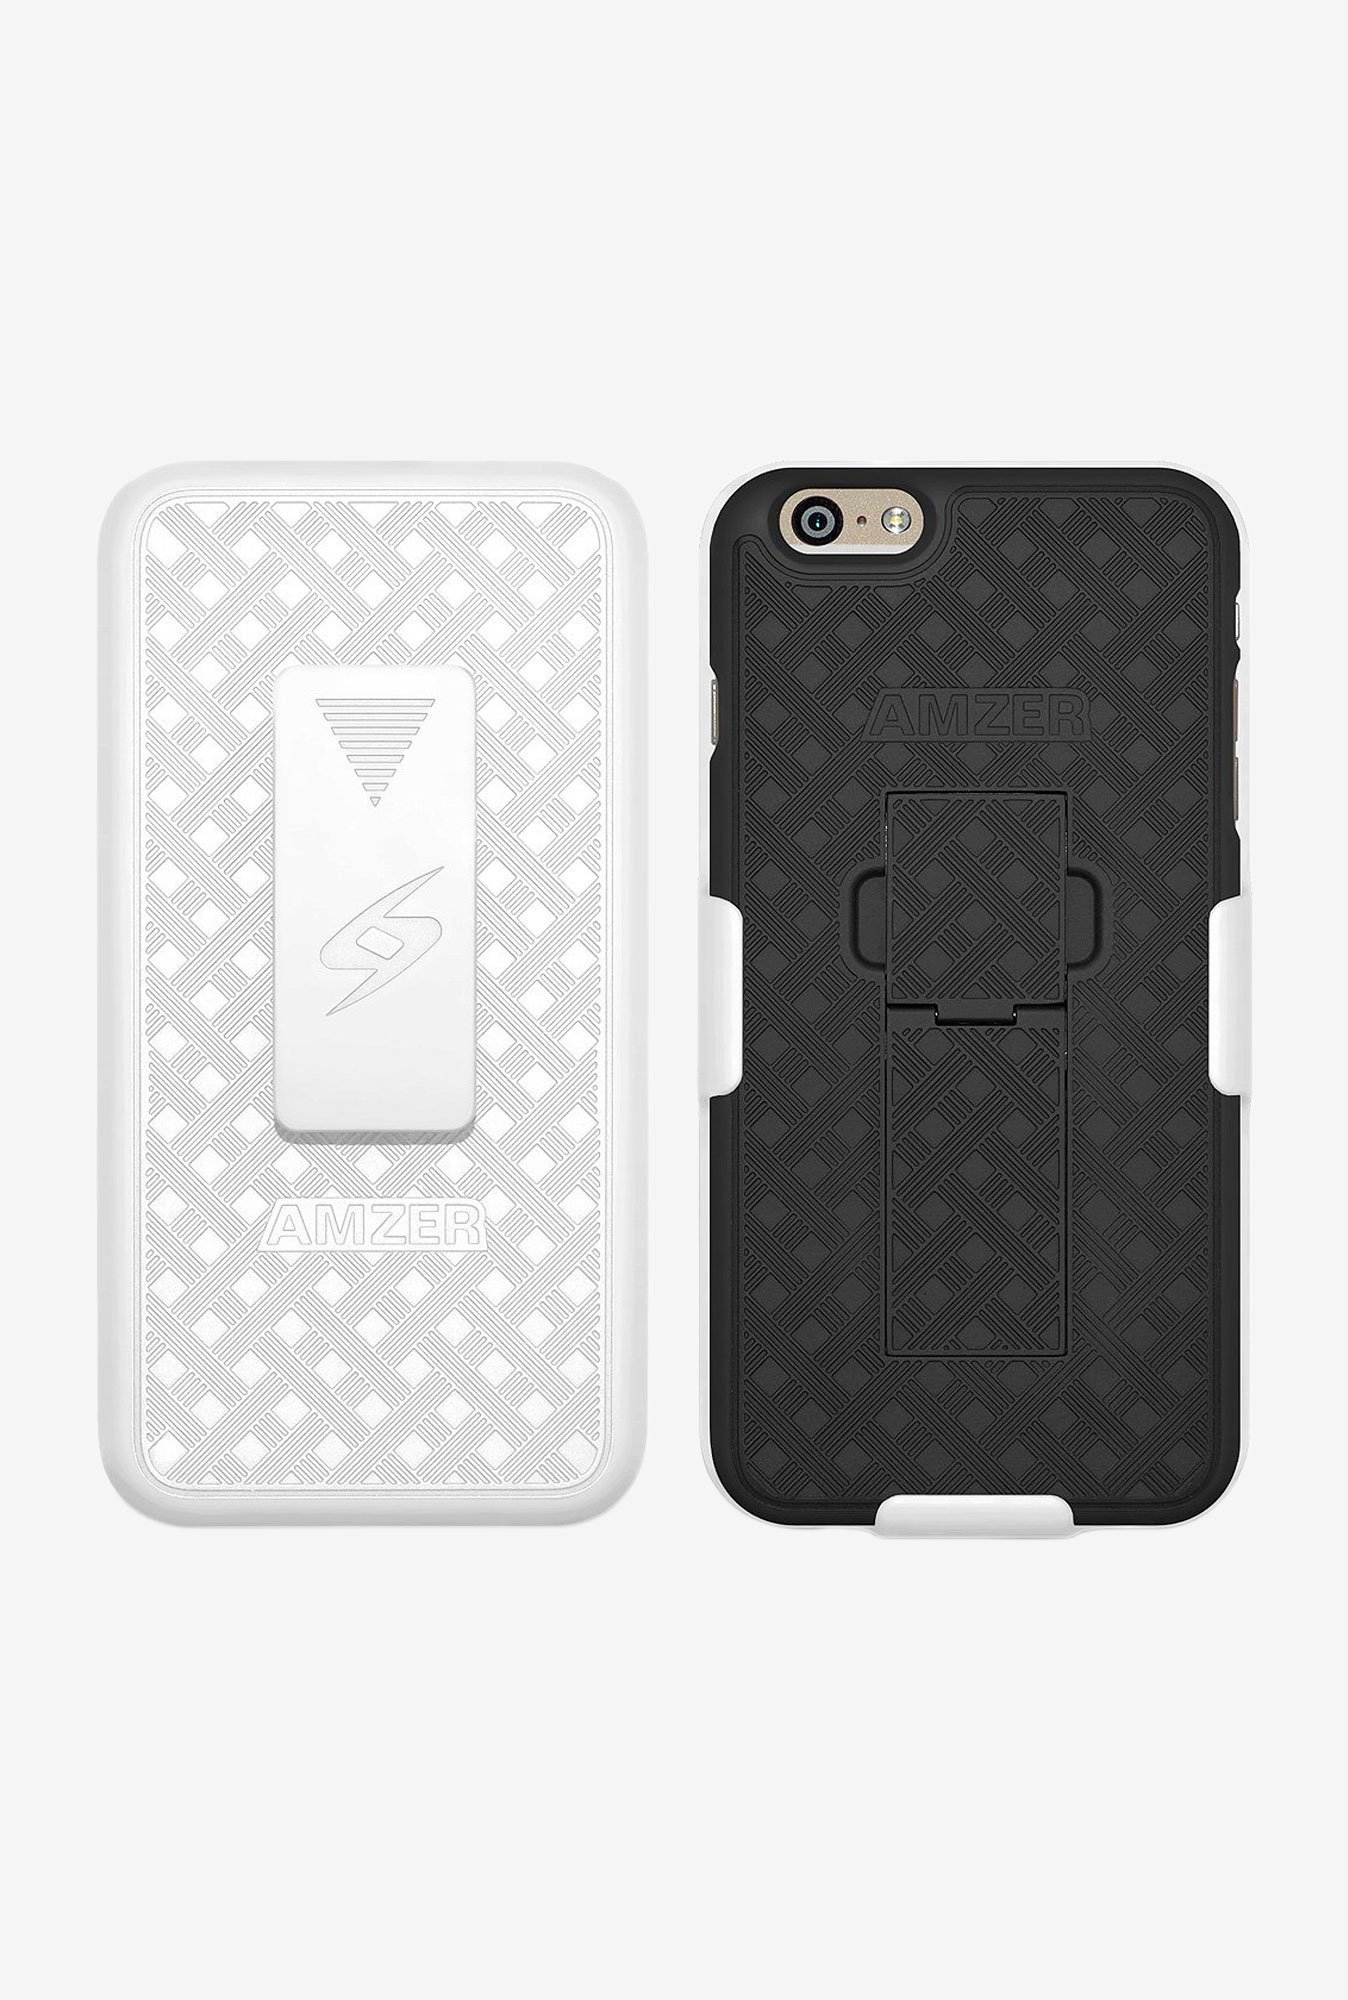 Amzer Shellster Case with Kickstand White/Black for iPhone6+